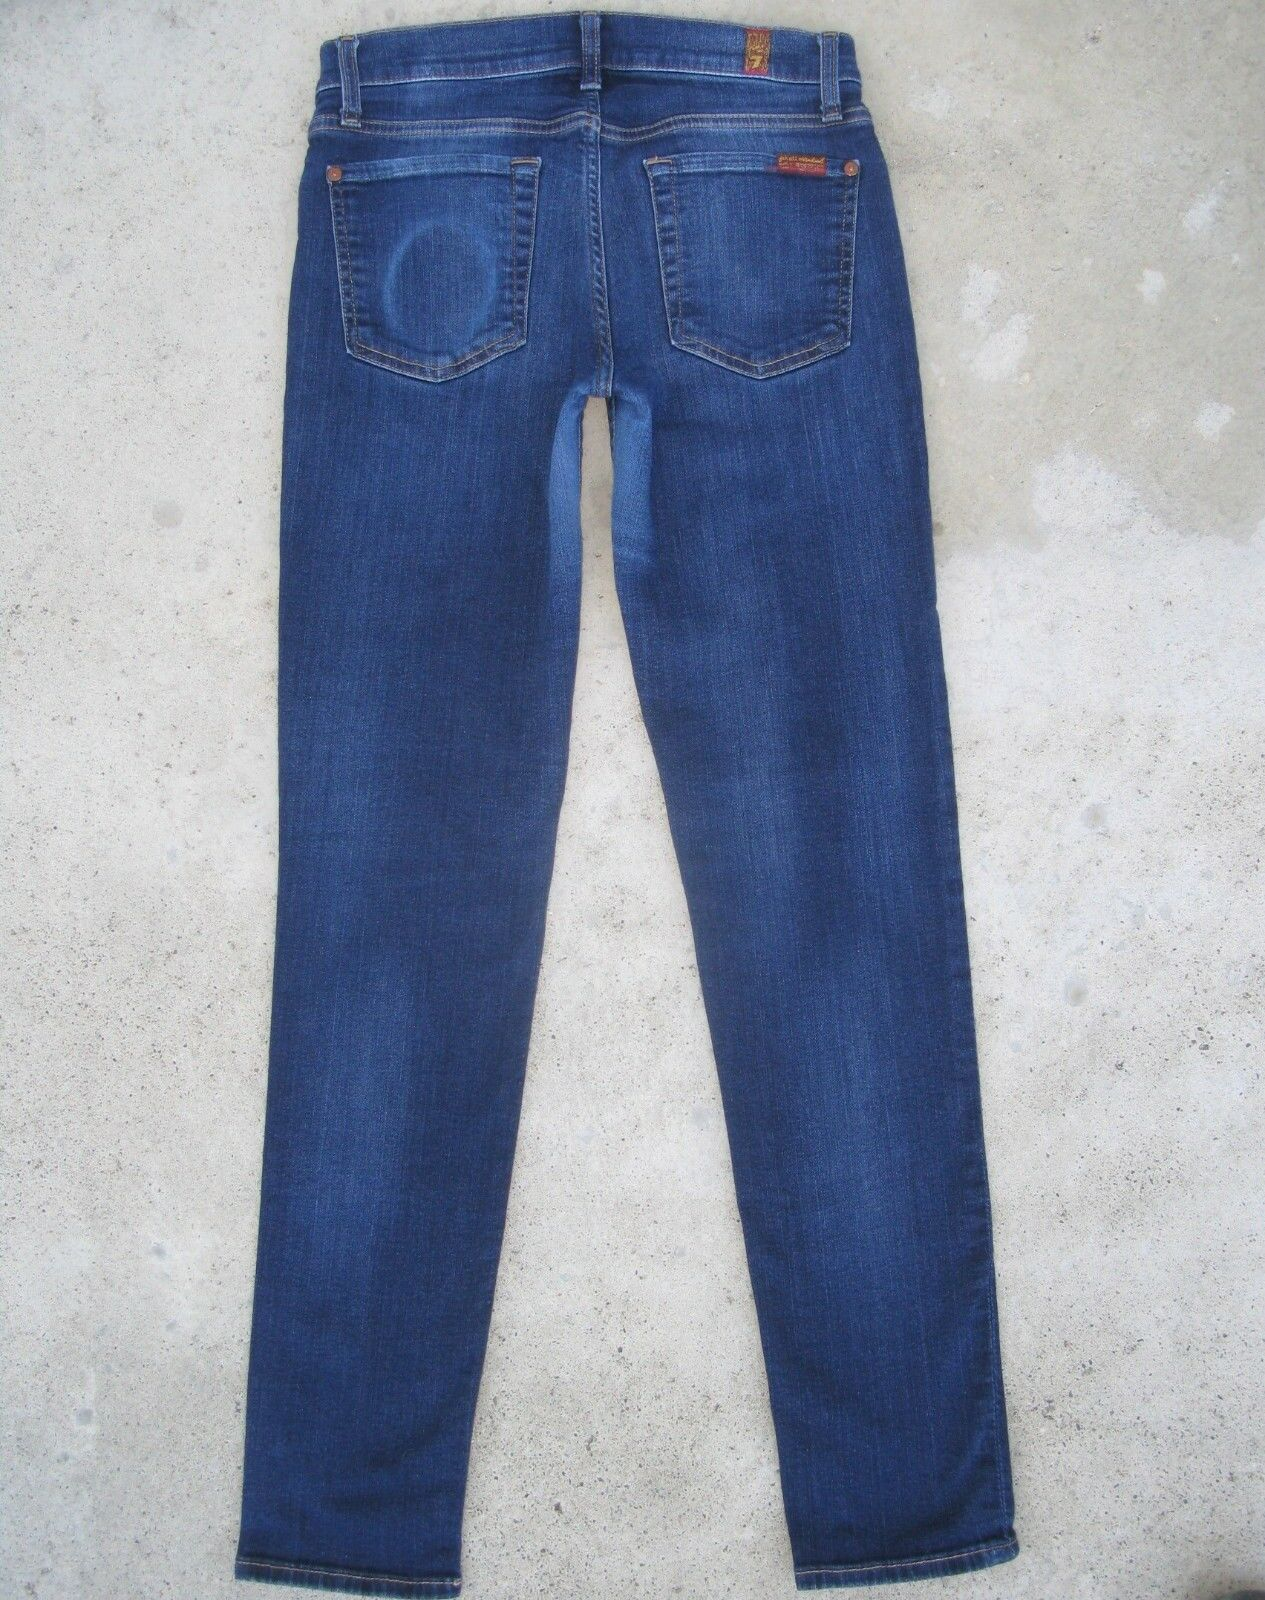 7 For All Mankind The Slim Cigarette Skinny Jeans Dark Distressed Sz 27